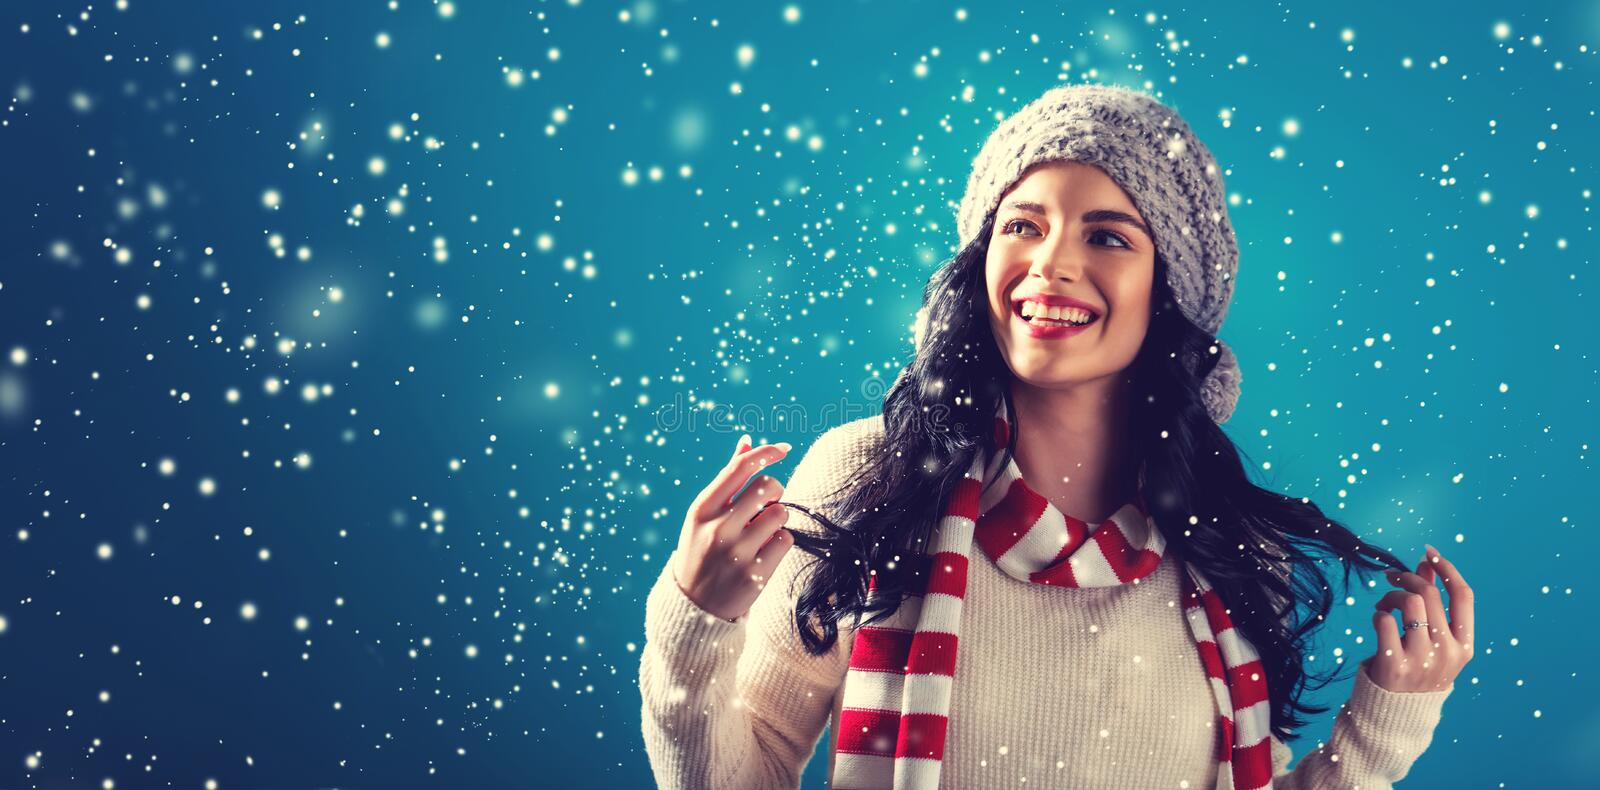 Happy young woman in winter clothes. In a snowy night stock photos